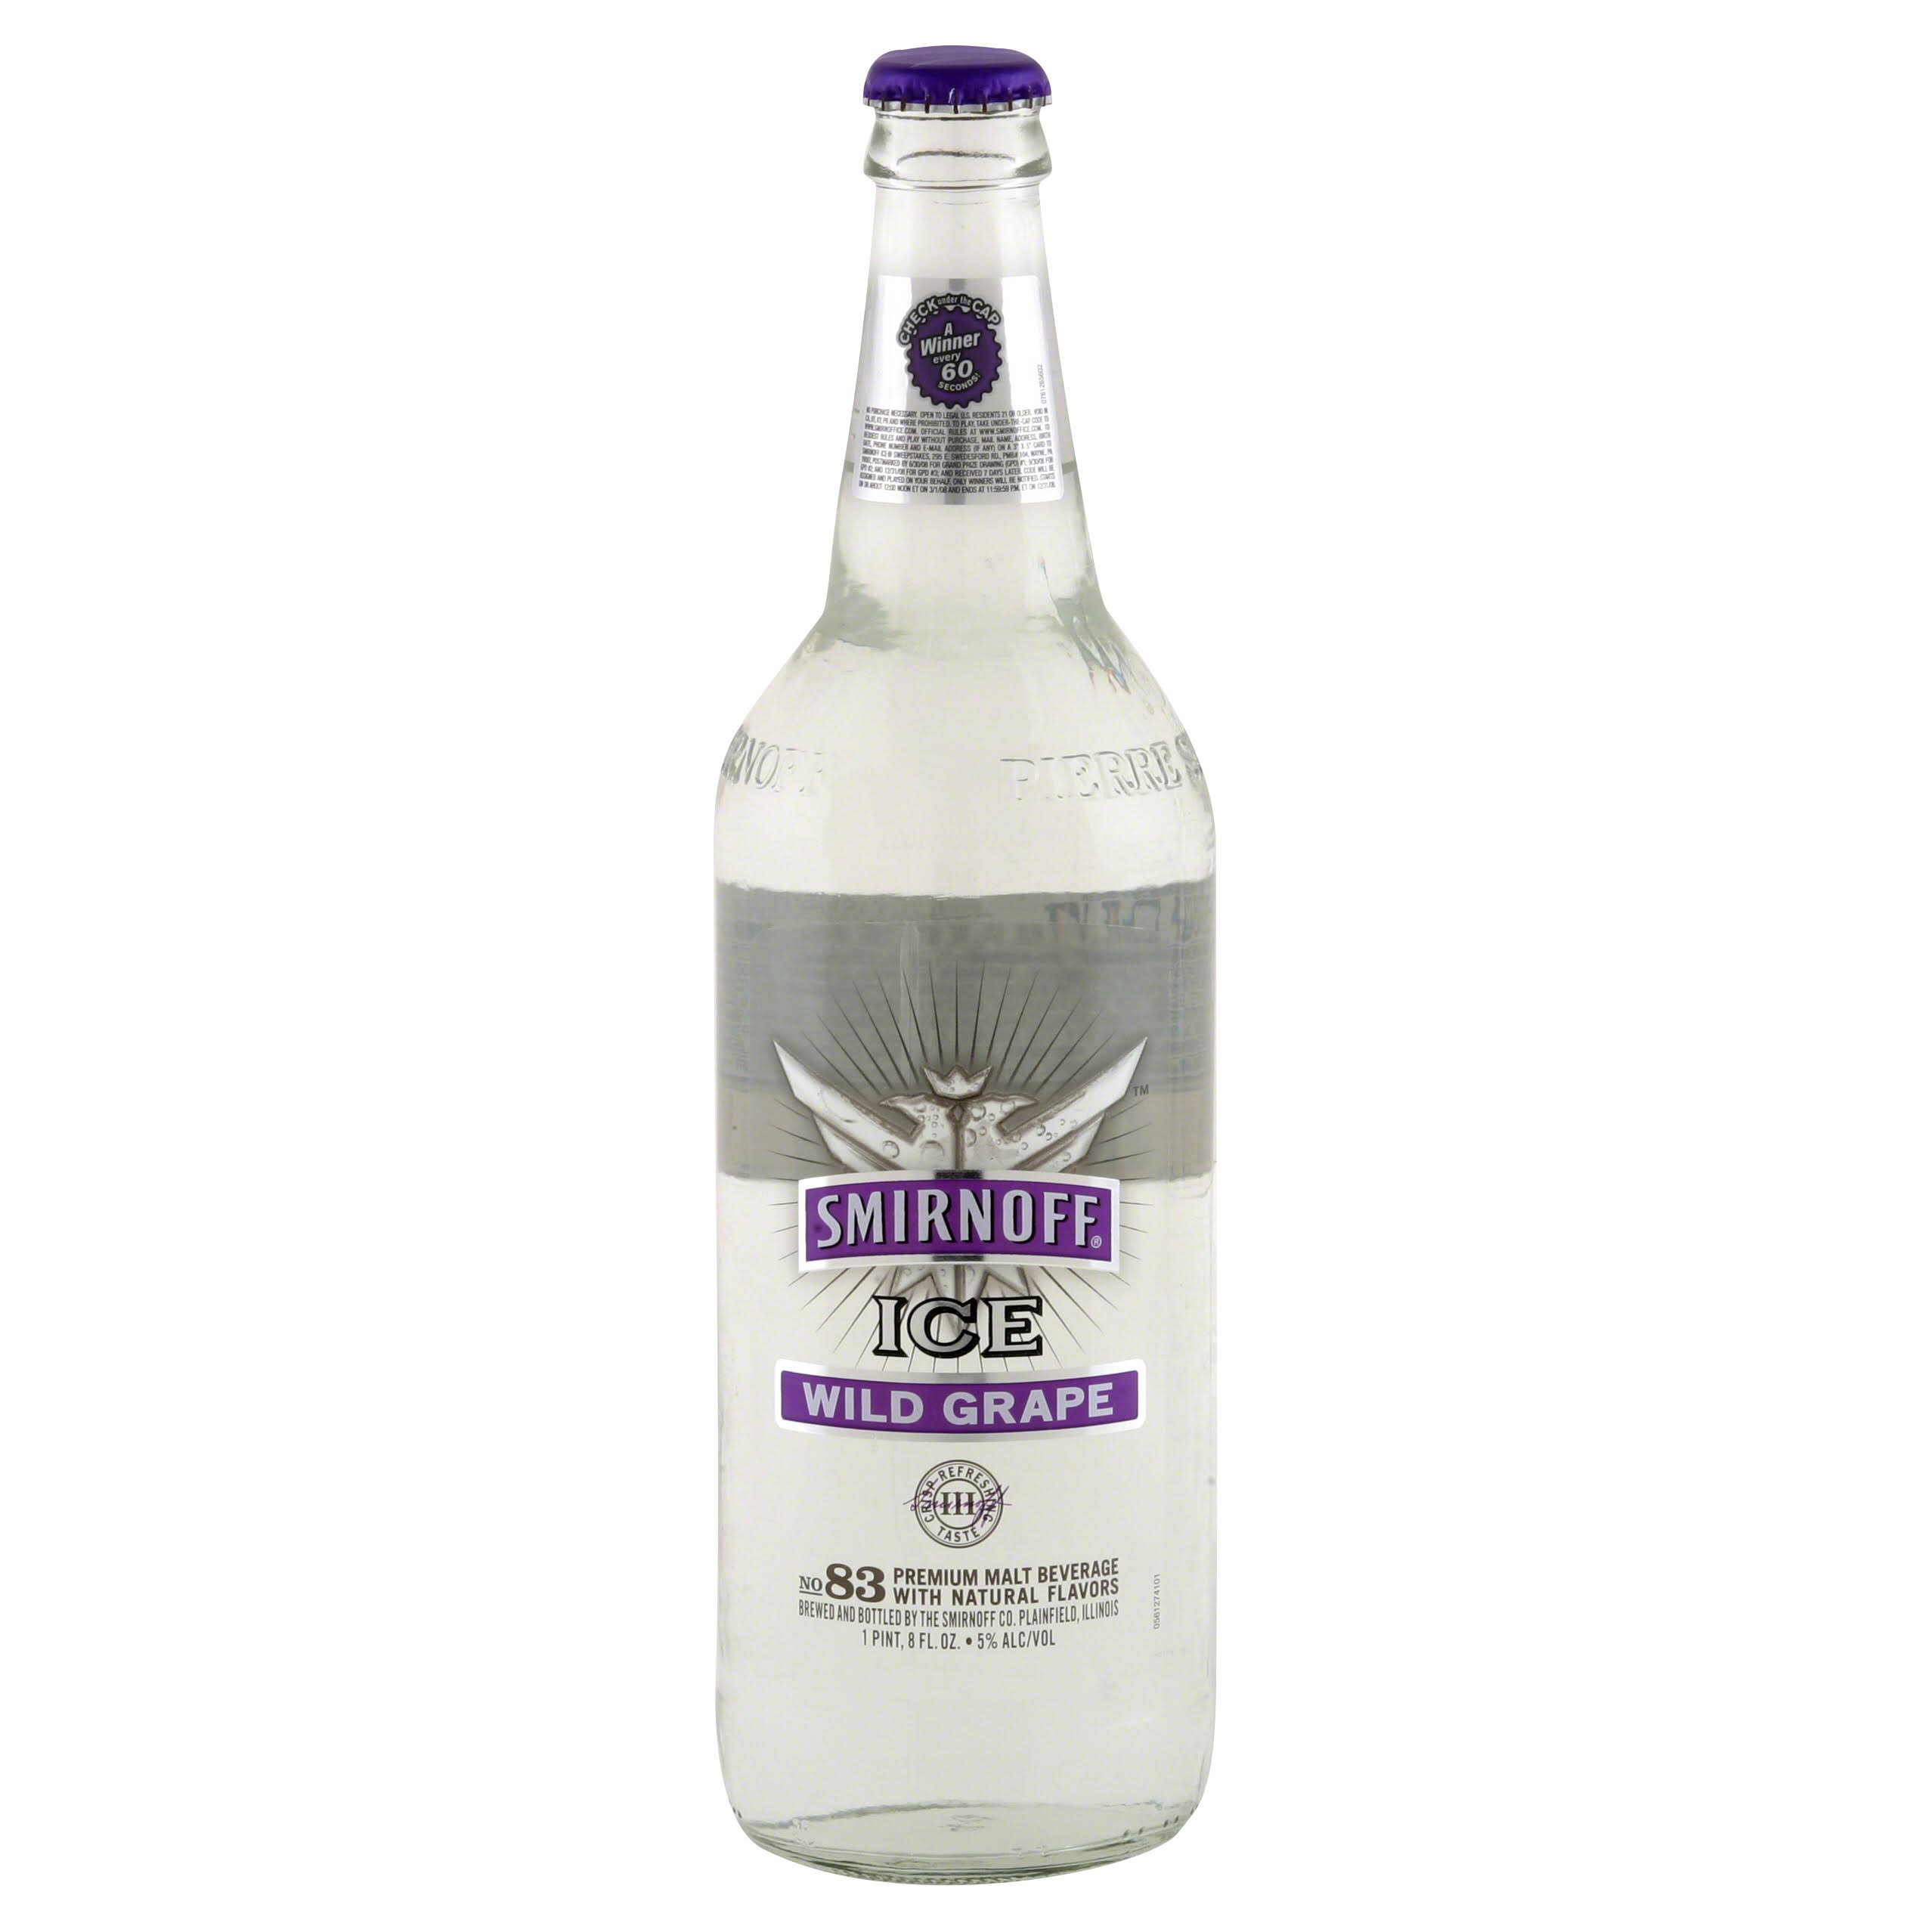 Smirnoff Ice Malt Beverage, Premium, Wild Grape - 24 oz